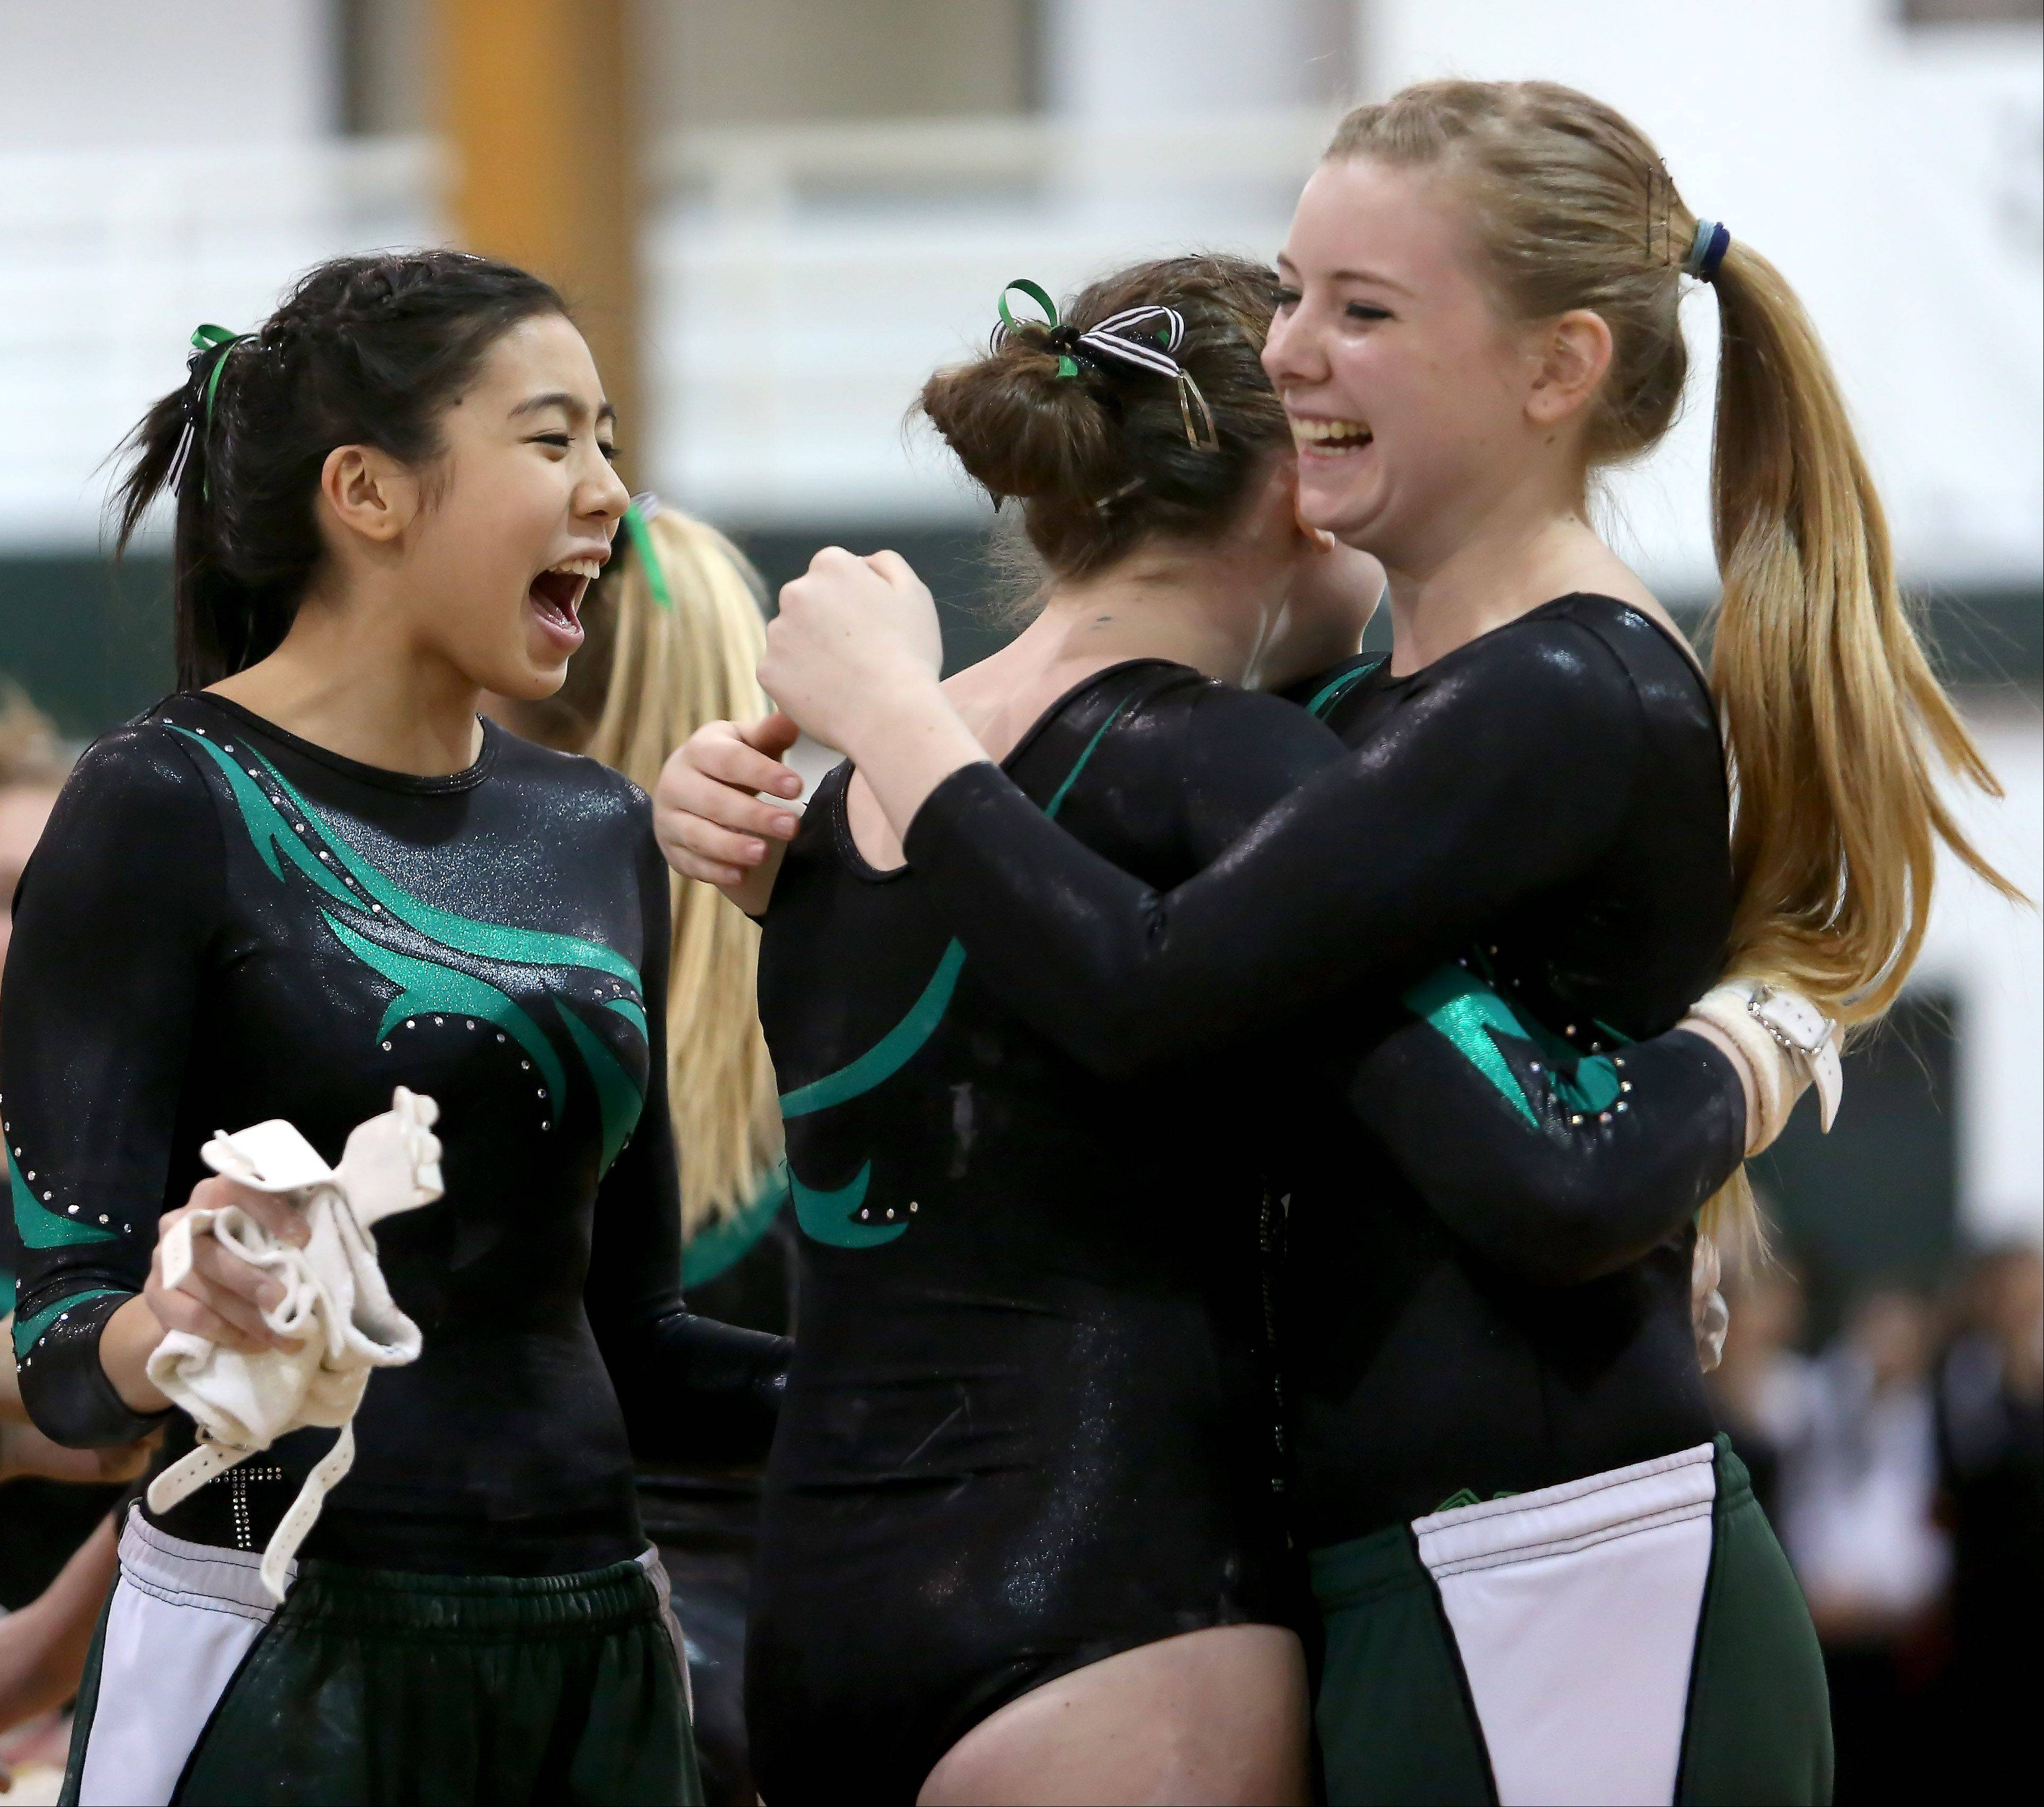 Mackenzie O'Keefe, center, of Glenbard West is congratulated by teammates after her uneven parallel bars routine at sectional gymnastics at Glenbard West on Tuesday in Glen Ellyn.